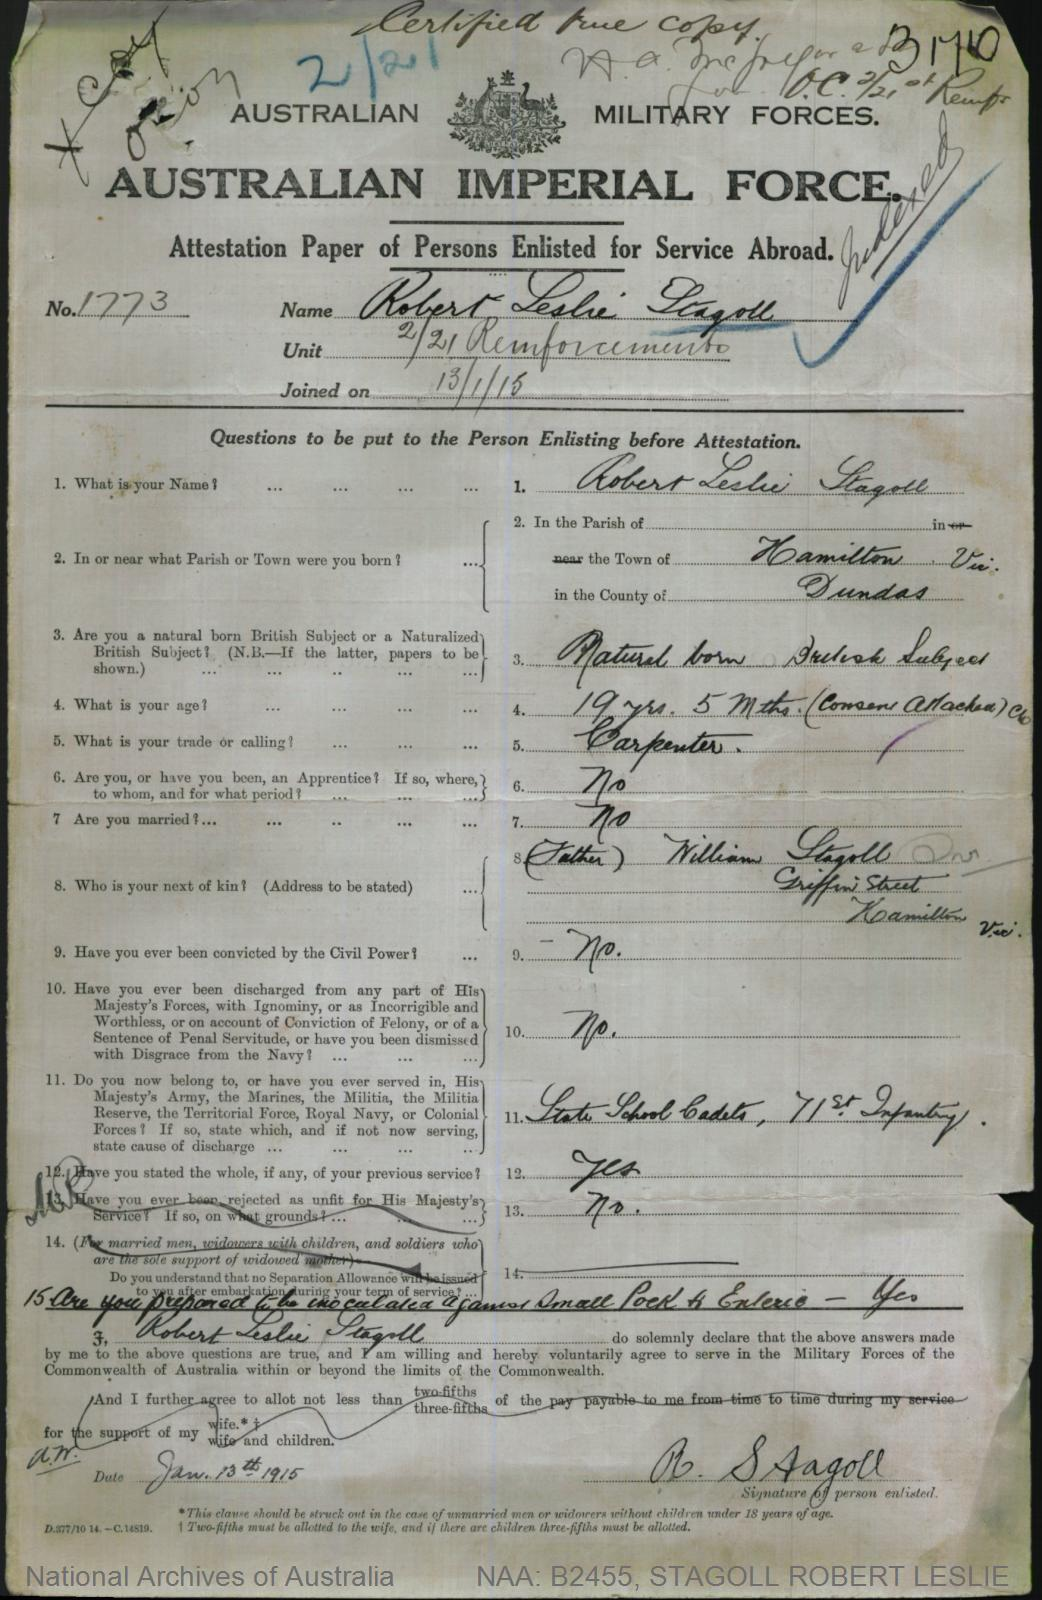 STAGOLL Robert Leslie : Service Number - 1773 : Place of Birth - Hamilton VIC : Place of Enlistment - Hamilton VIC : Next of Kin - (Father) STAGOLL William